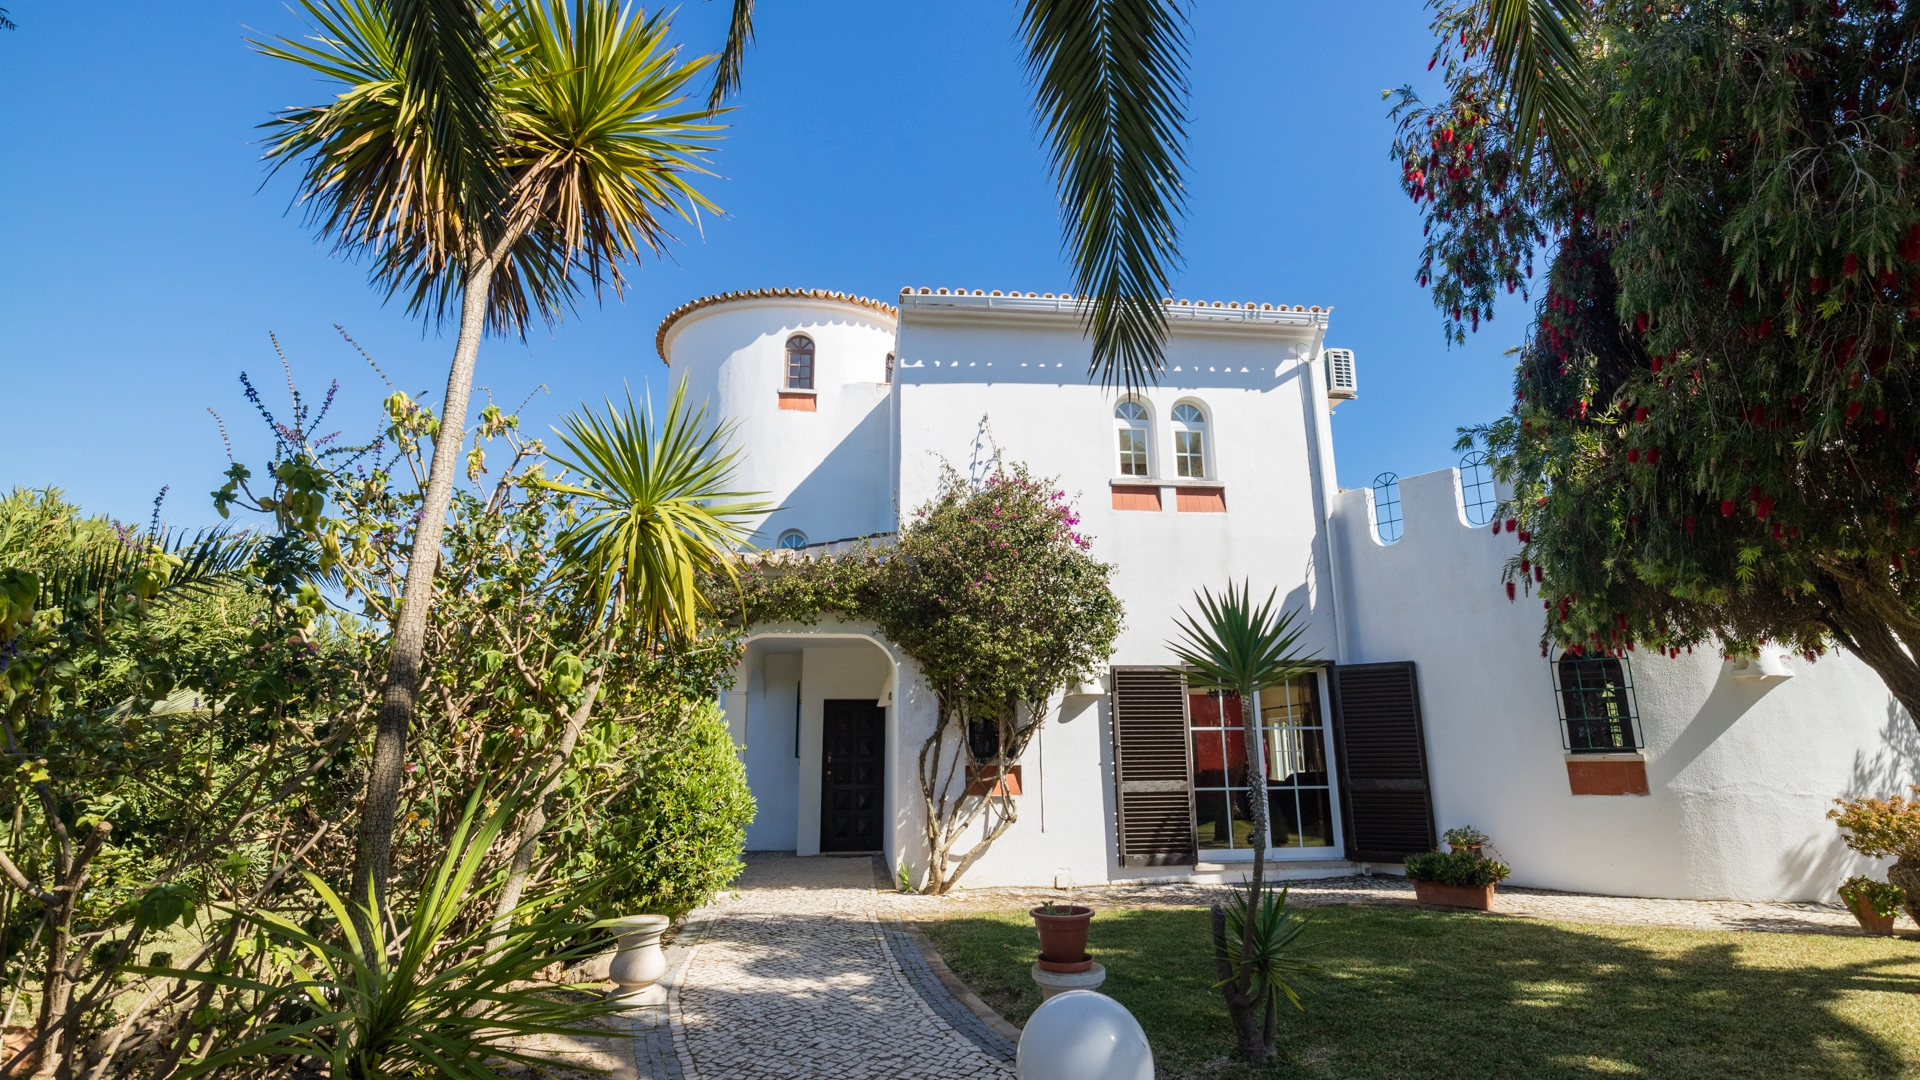 REDUCED BY 30% FOR A QUICK SALE! 6 Bedroom Villa with Pool near Beaches, Albufeira | VM1436